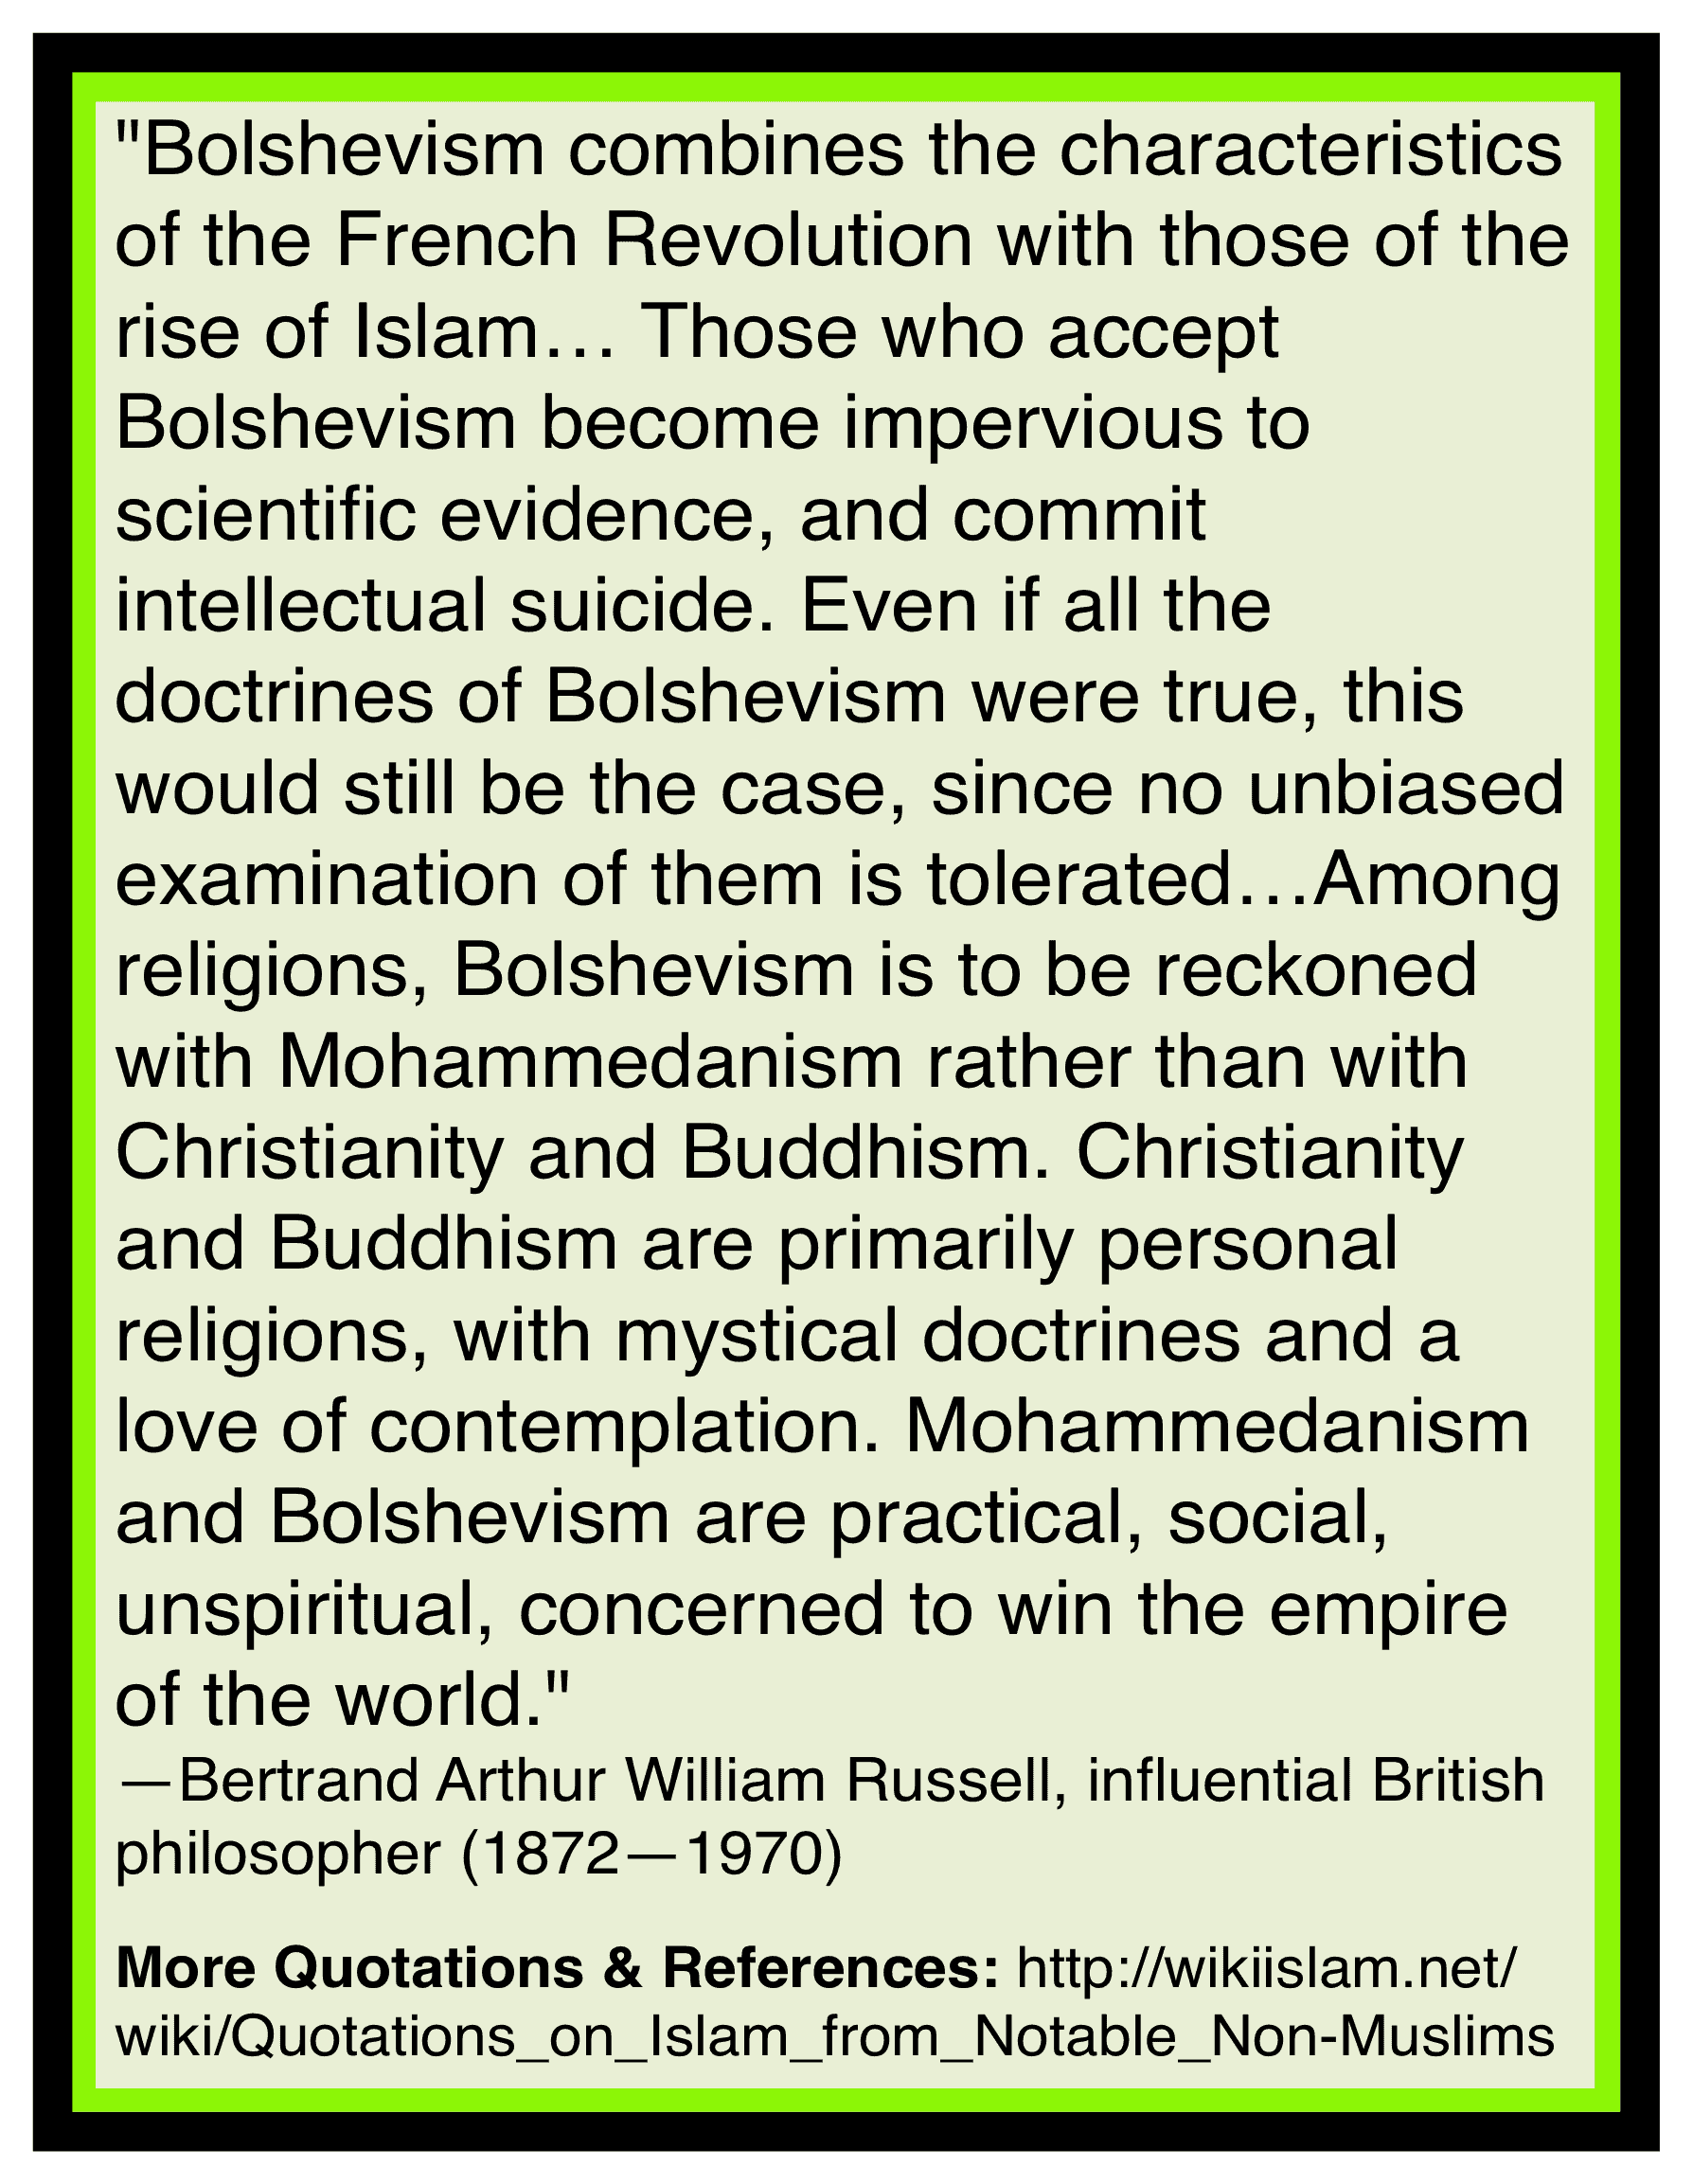 Islam is not spiritual